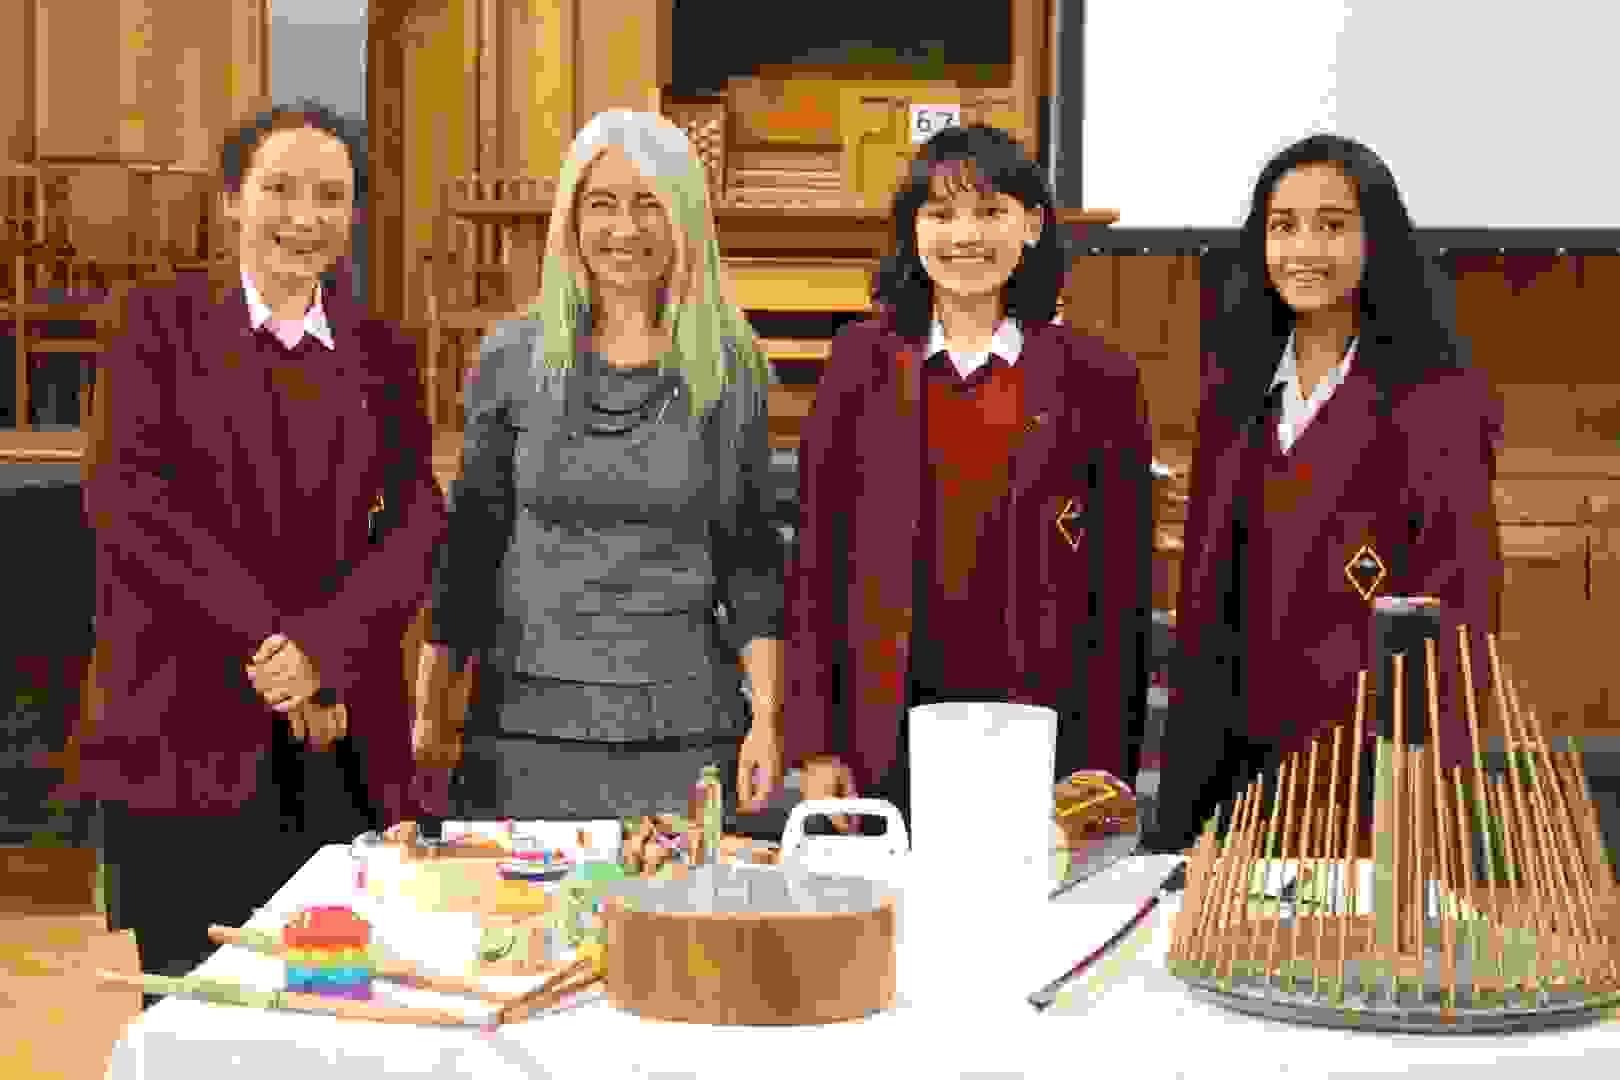 Dame Evelyn Glennie with pupils